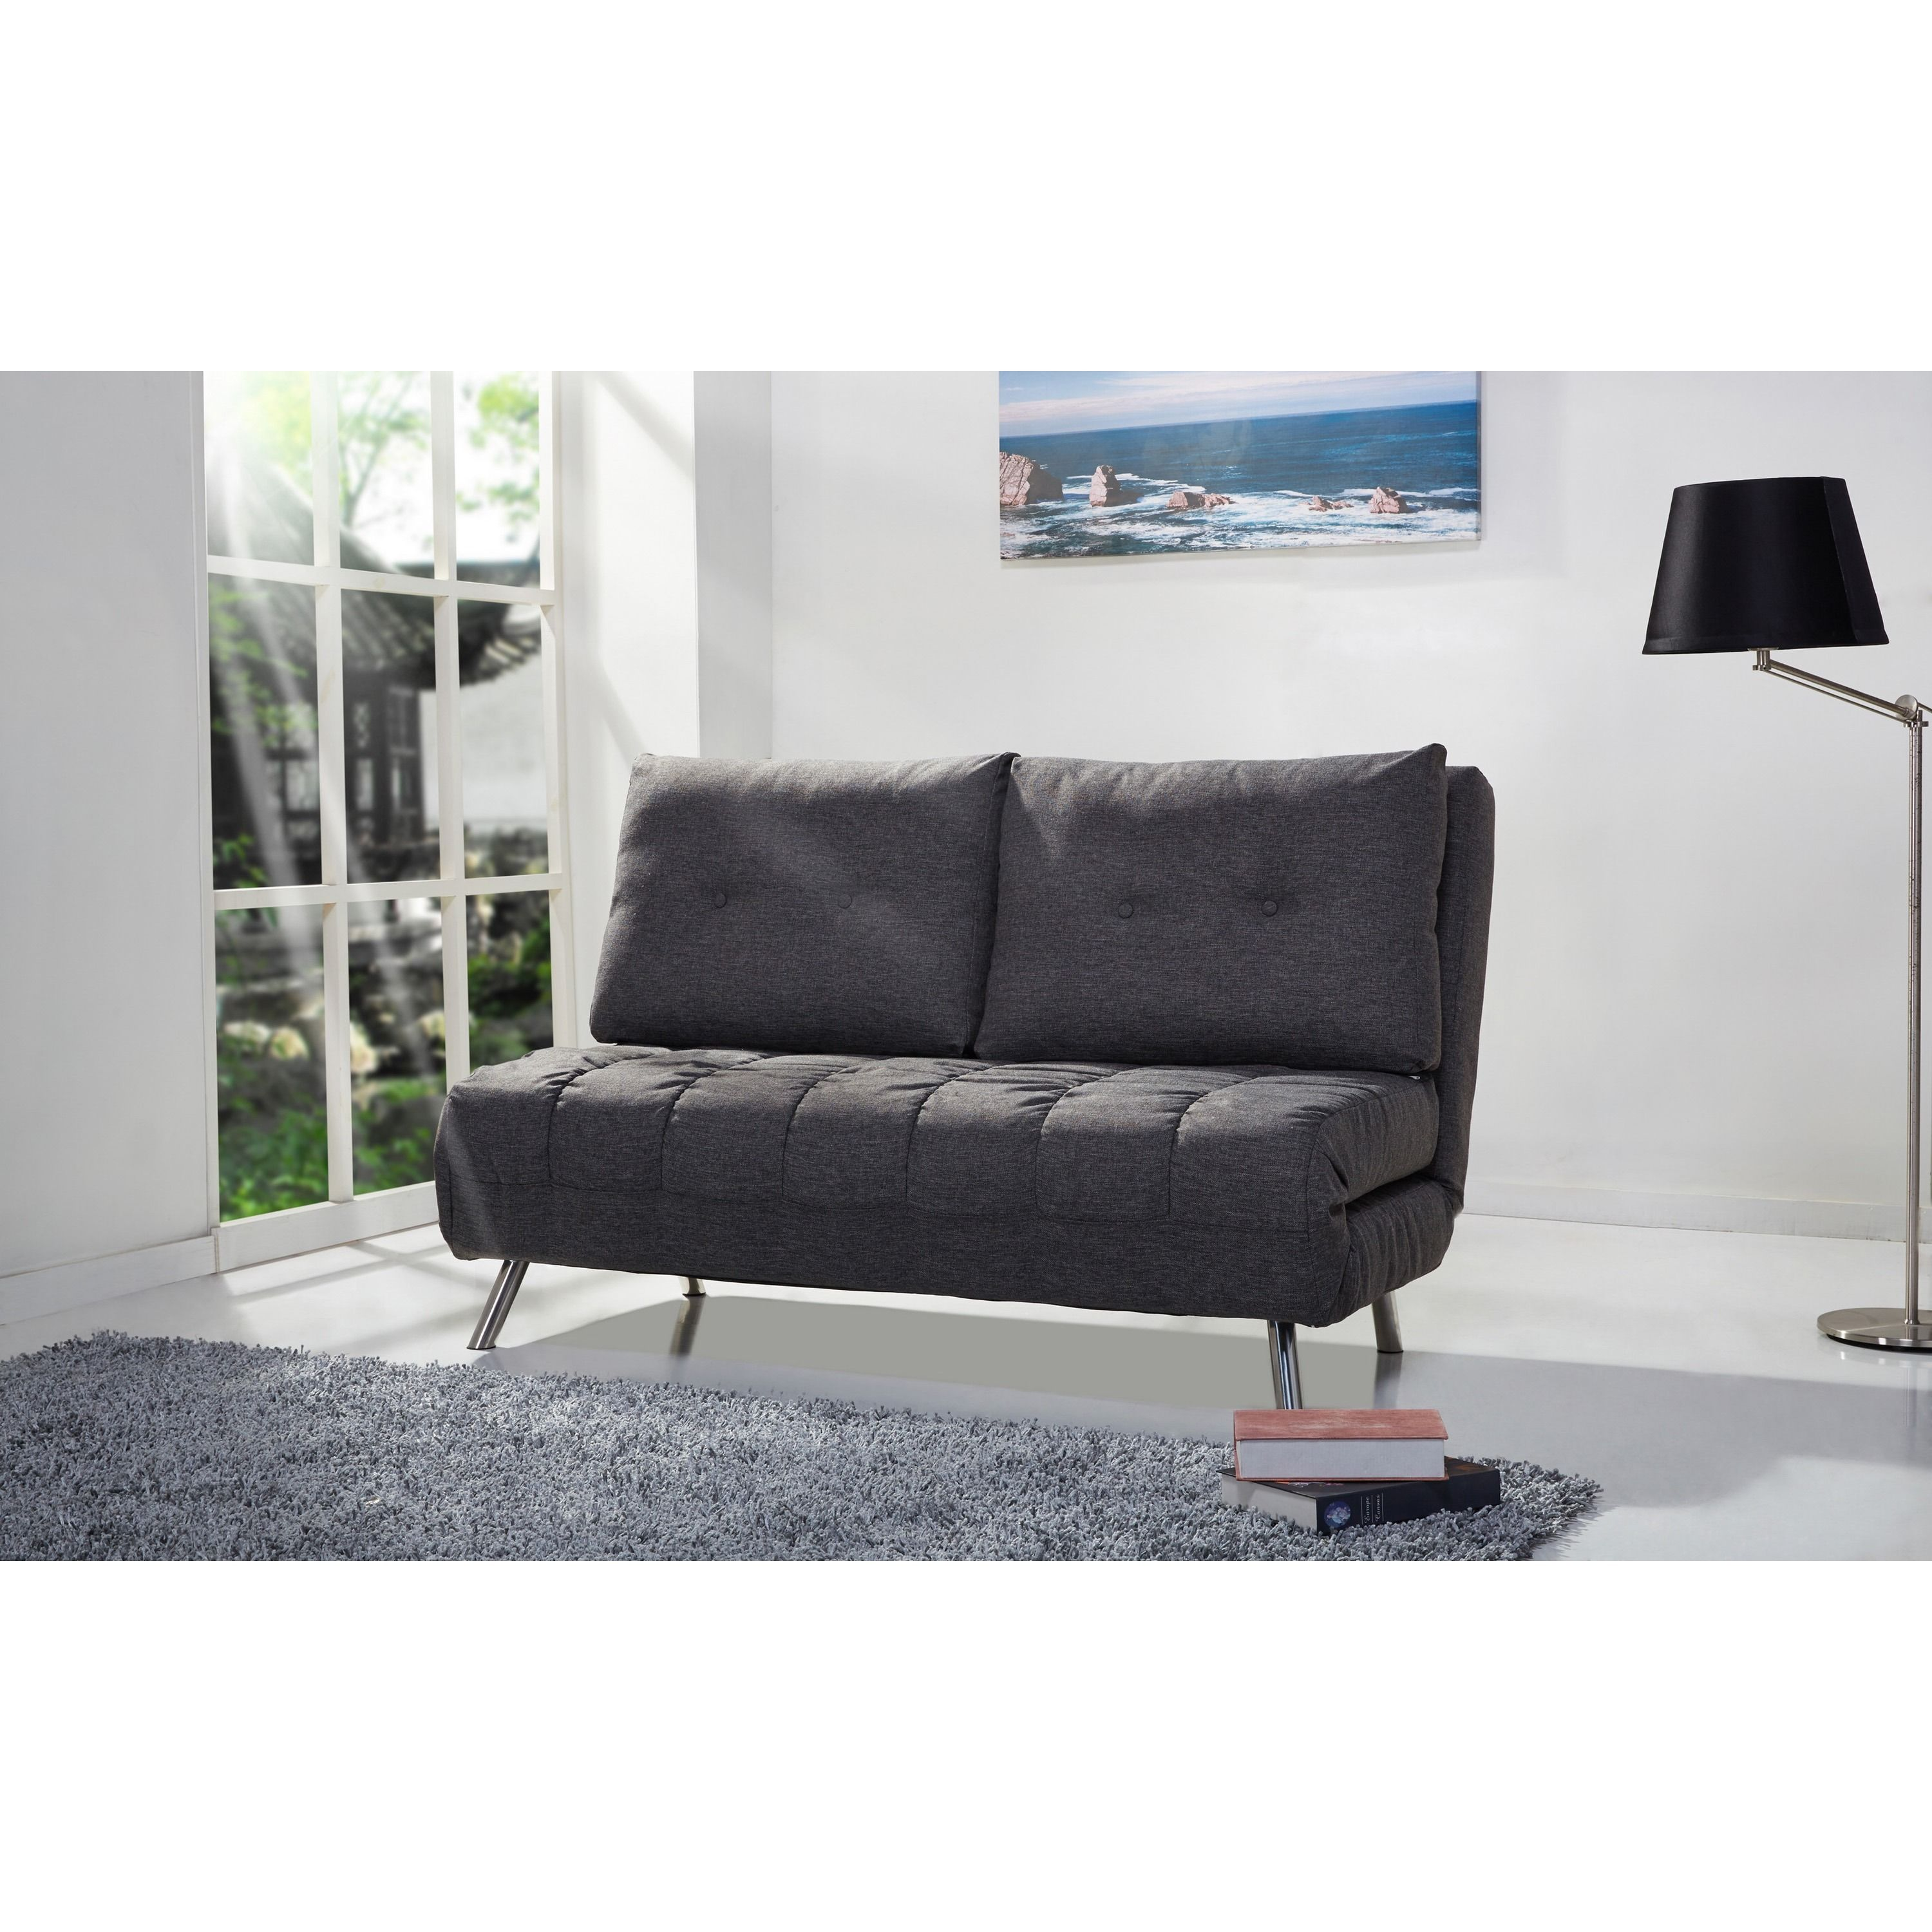 corner come sofas bed convertible full of quality sleeper size sofa loveseat furniture beds futon